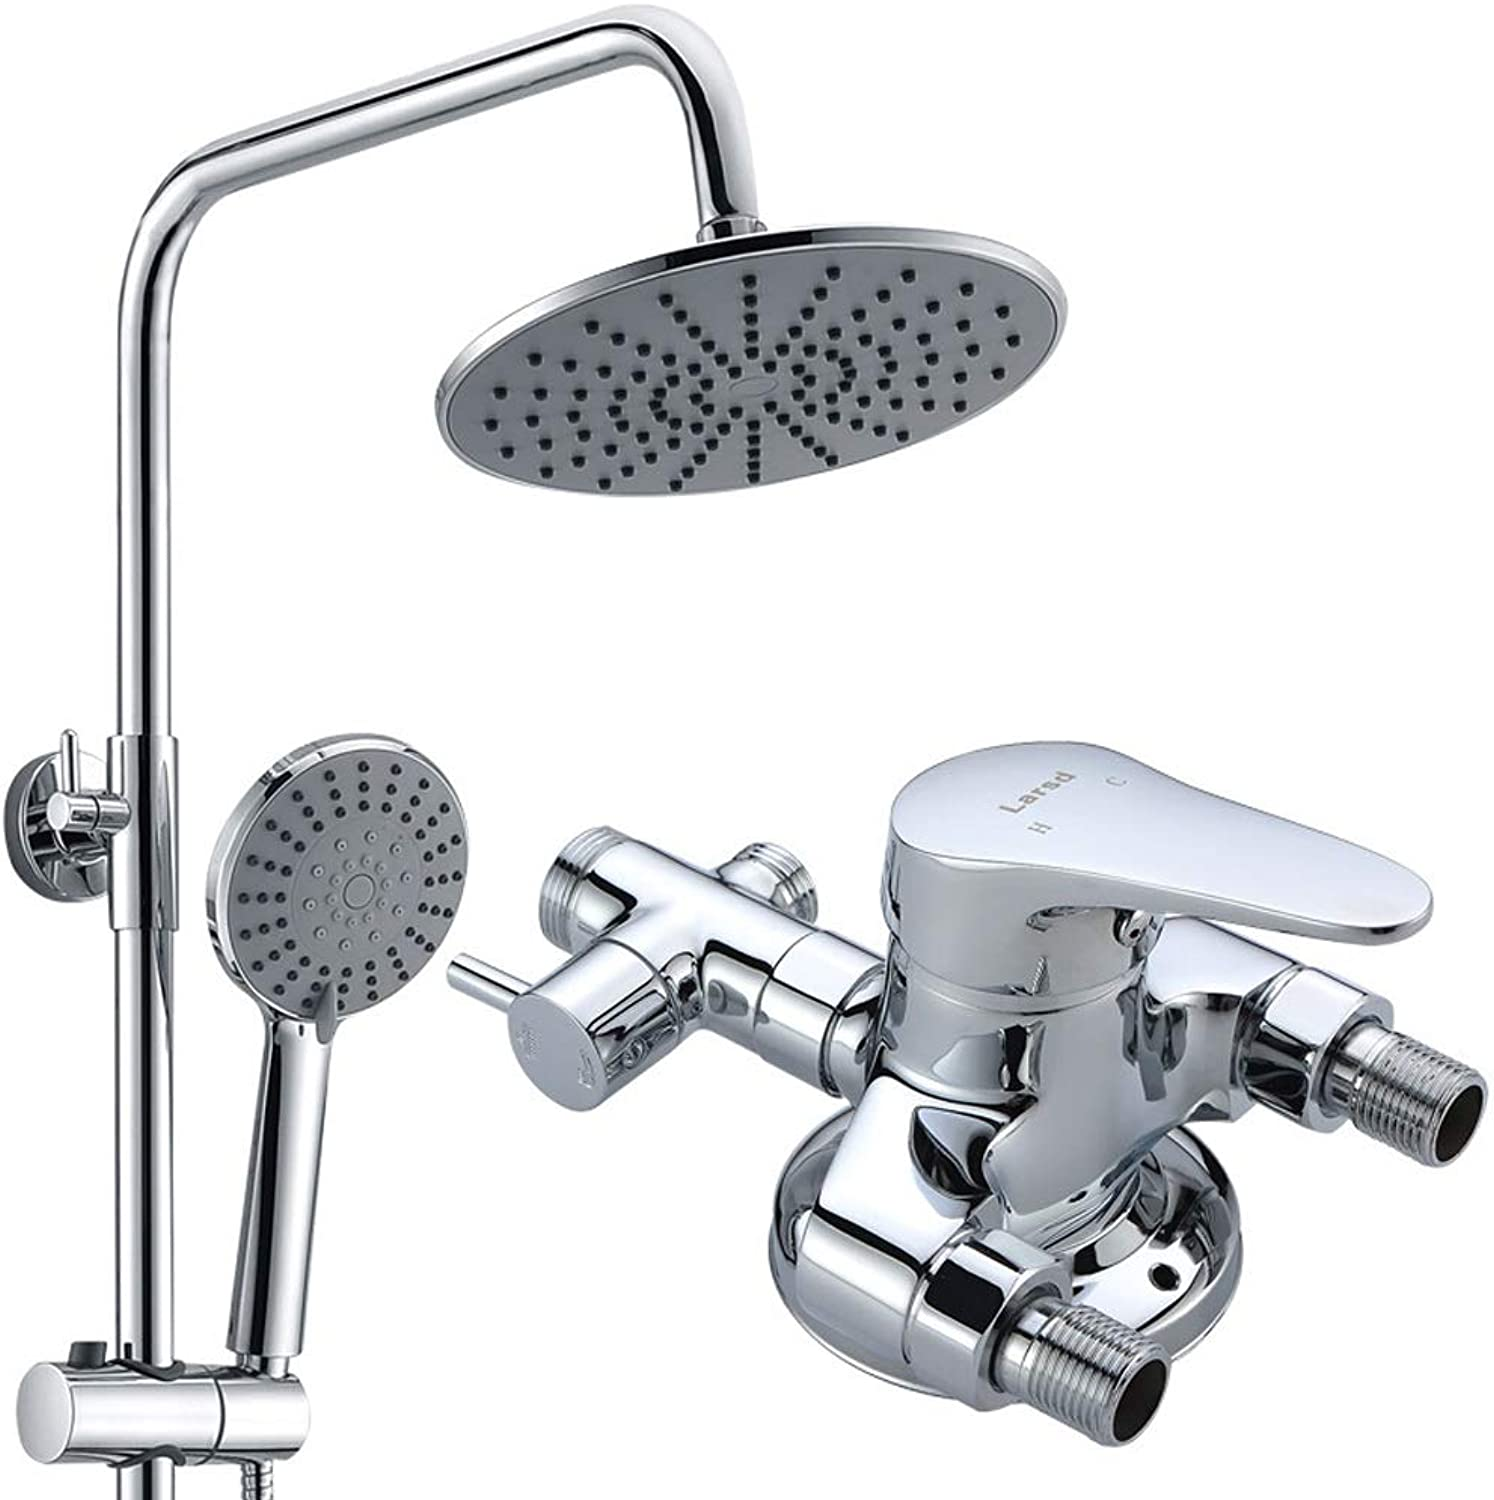 9-inch Bathroom Shower Faucet Chrome-plated Thermostatic Shower 5 Function Round Double Head Suit